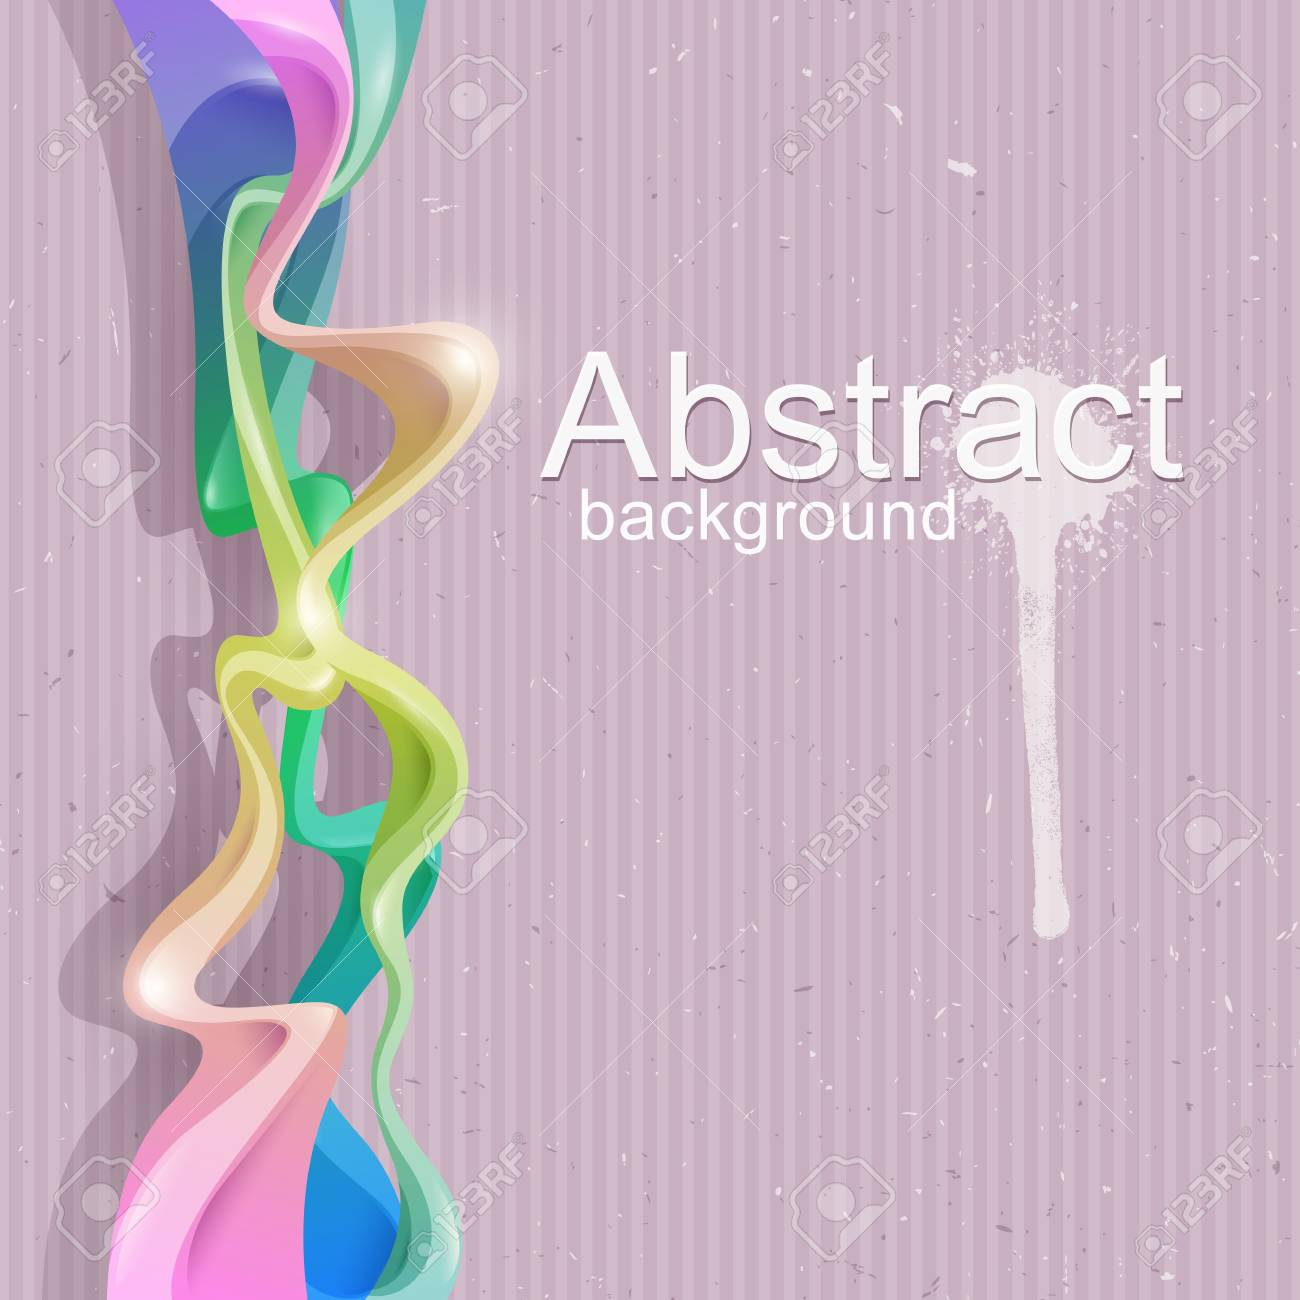 Bright colorful abstract background   illustration Stock Illustration - 18006424